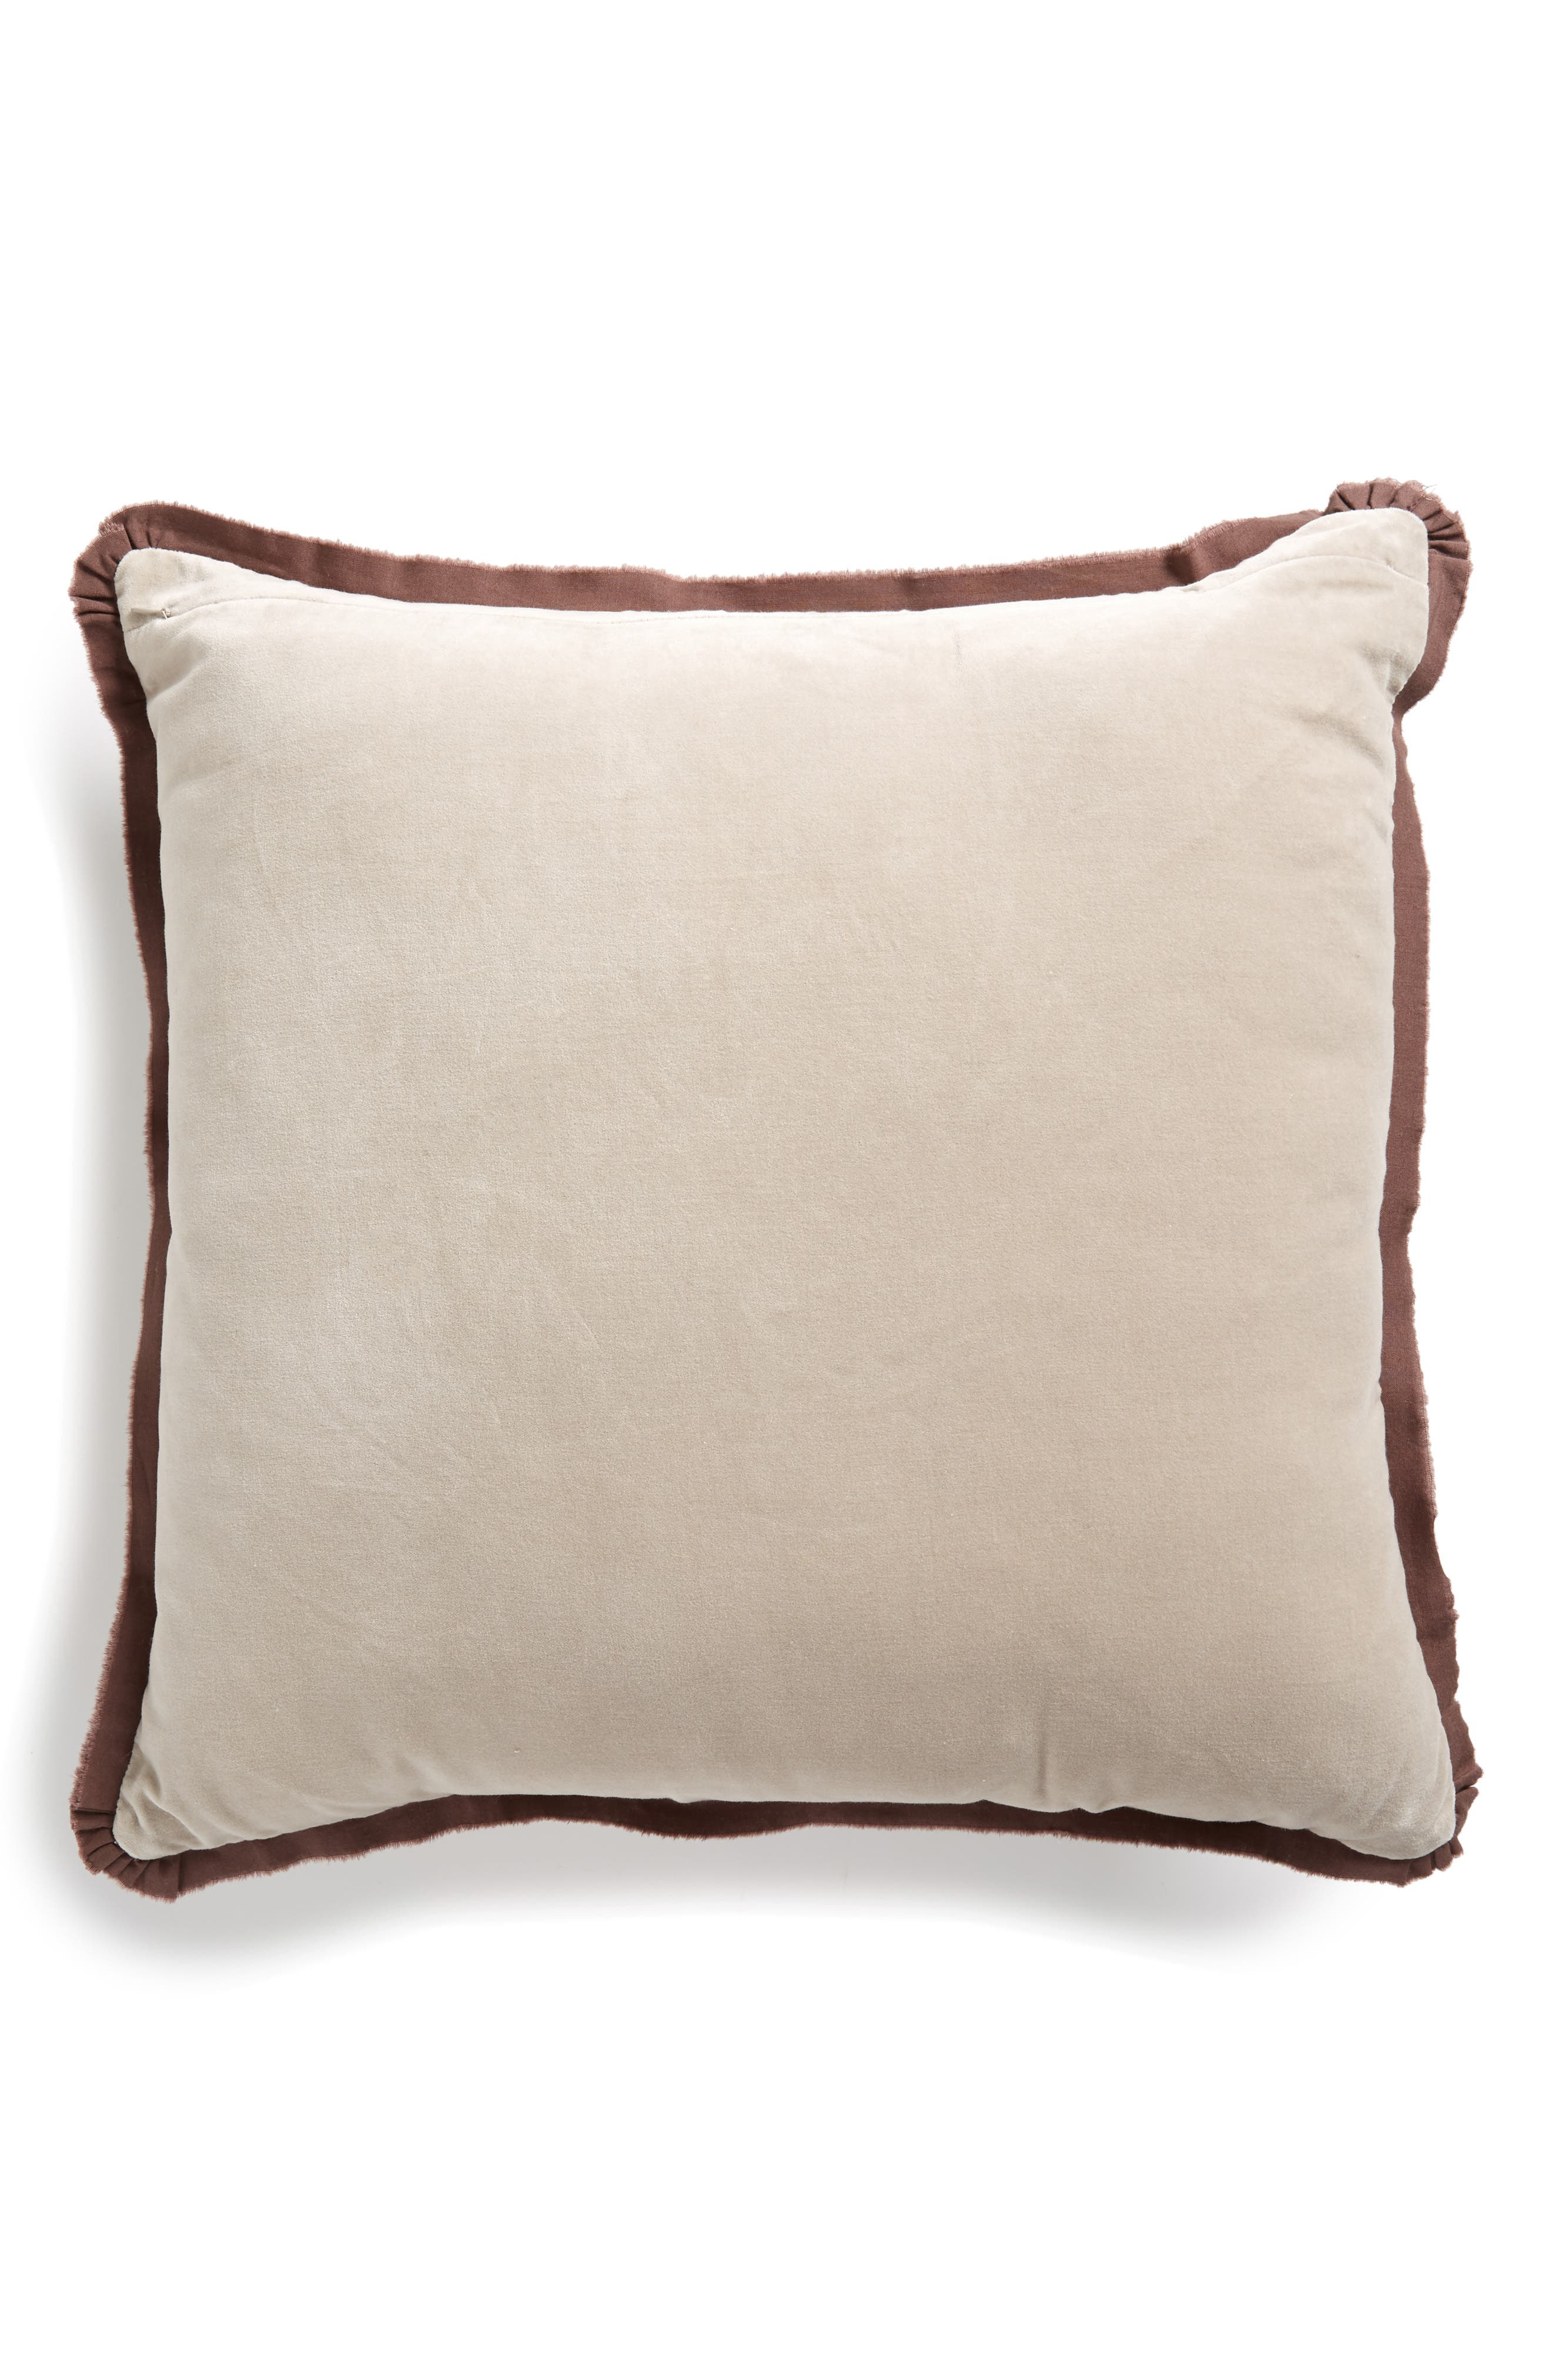 Sun Print Square Accent Pillow,                             Alternate thumbnail 2, color,                             BROWN ROSE